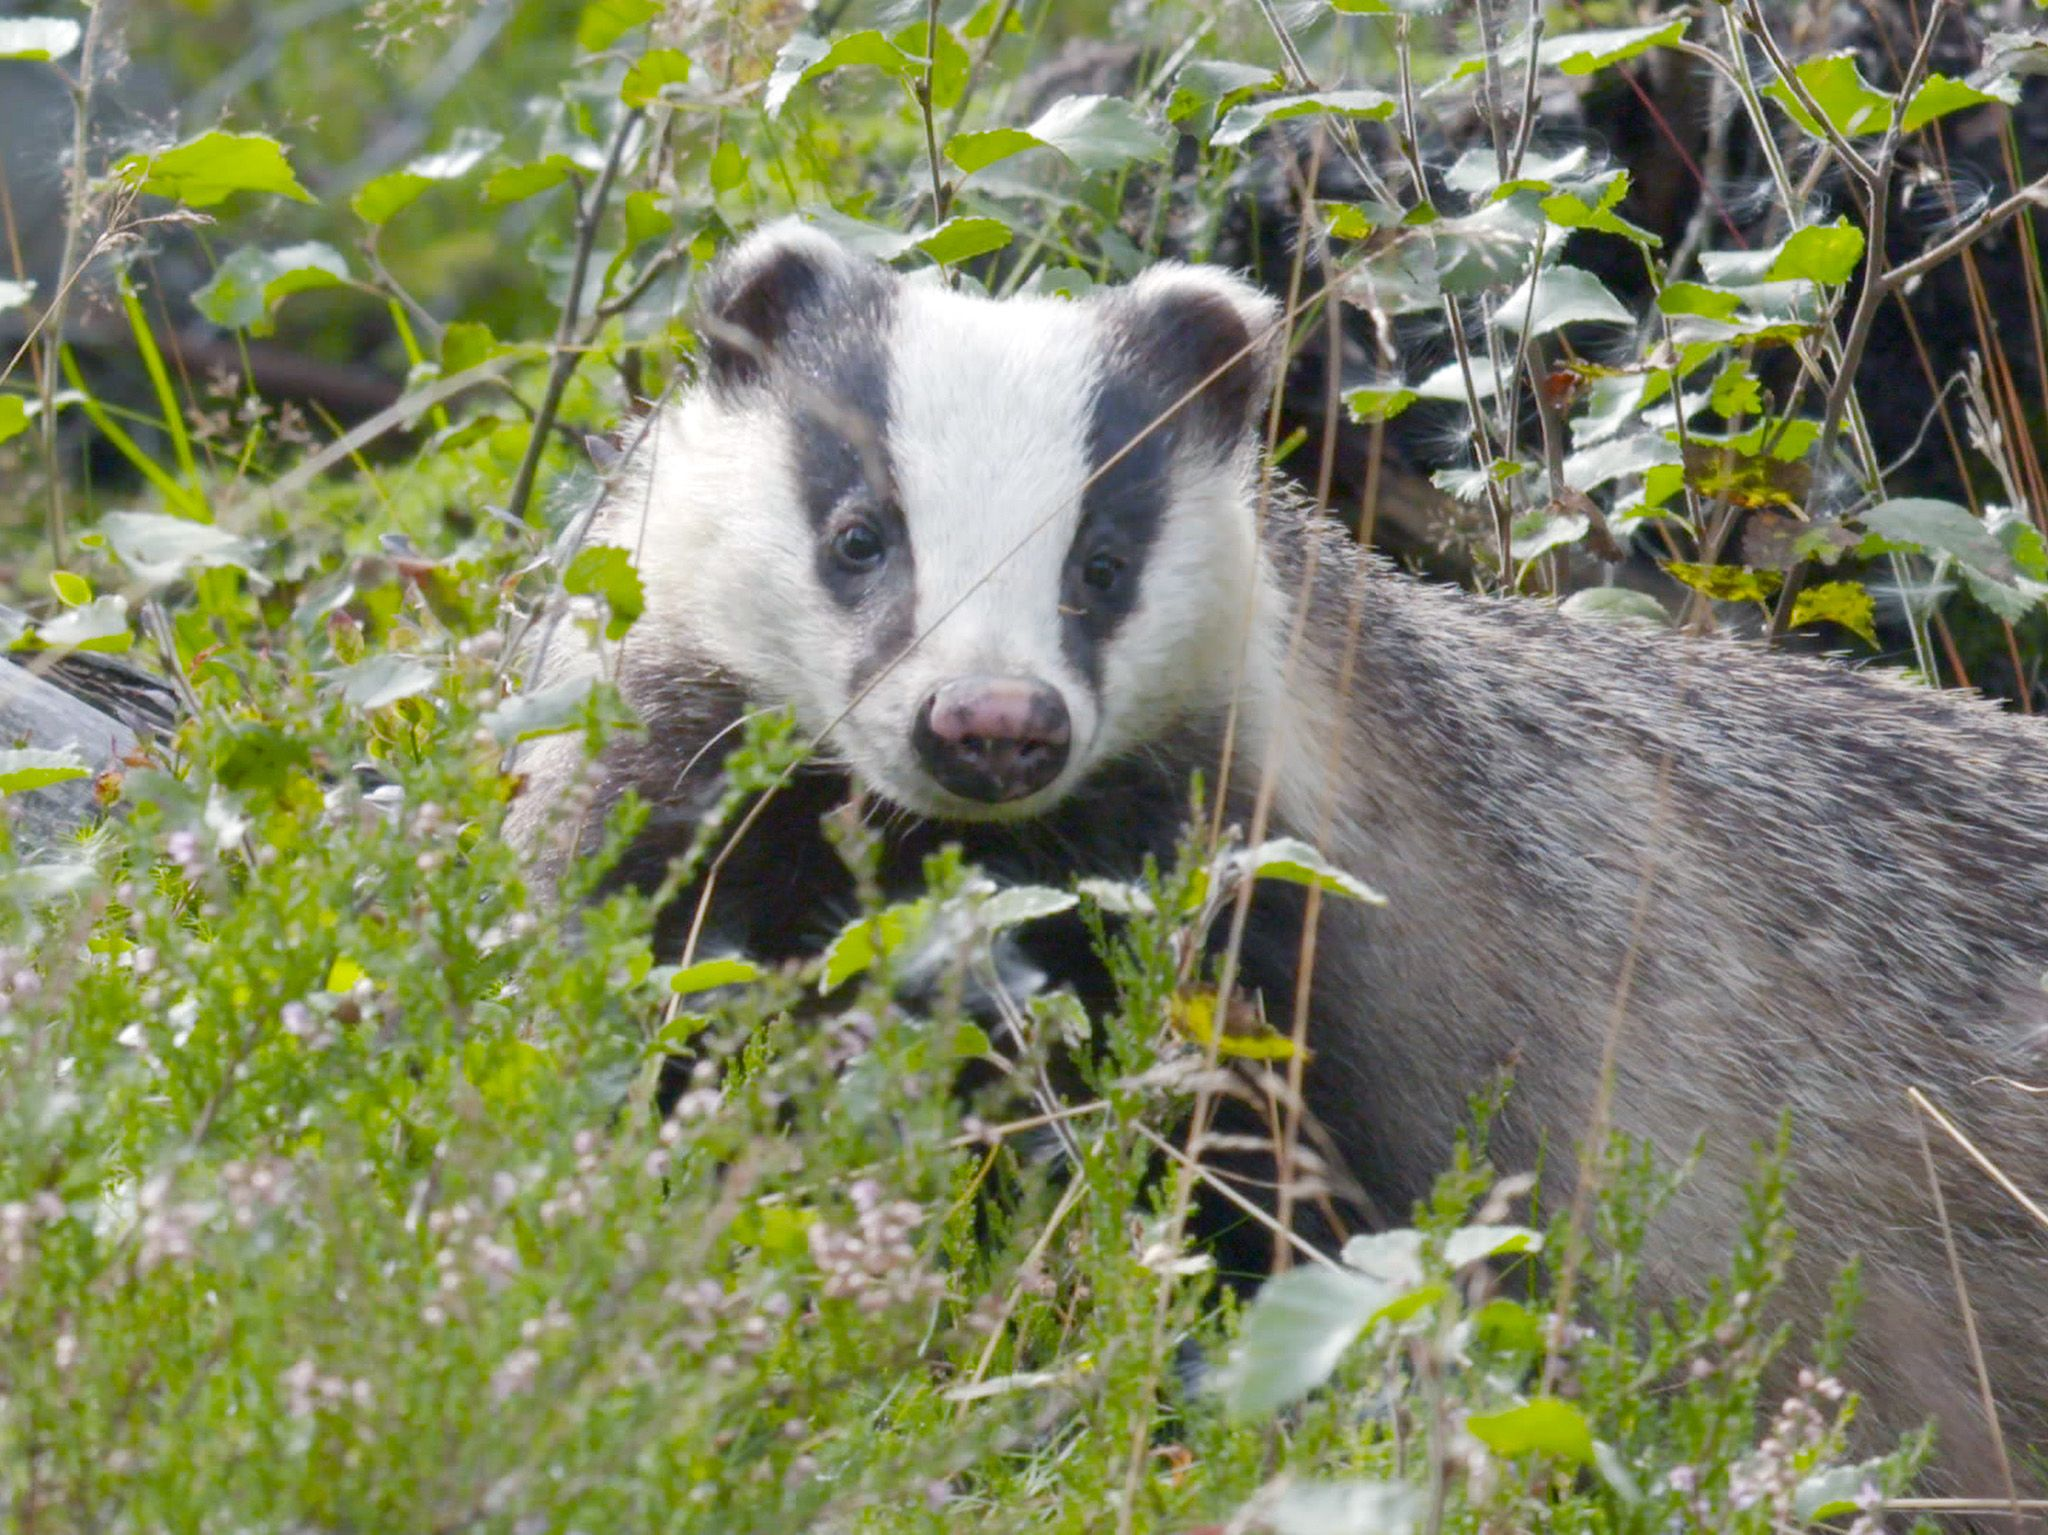 Badger in the bushes. This image is from Wild Scandinavia. [Photo of the day - July 2020]